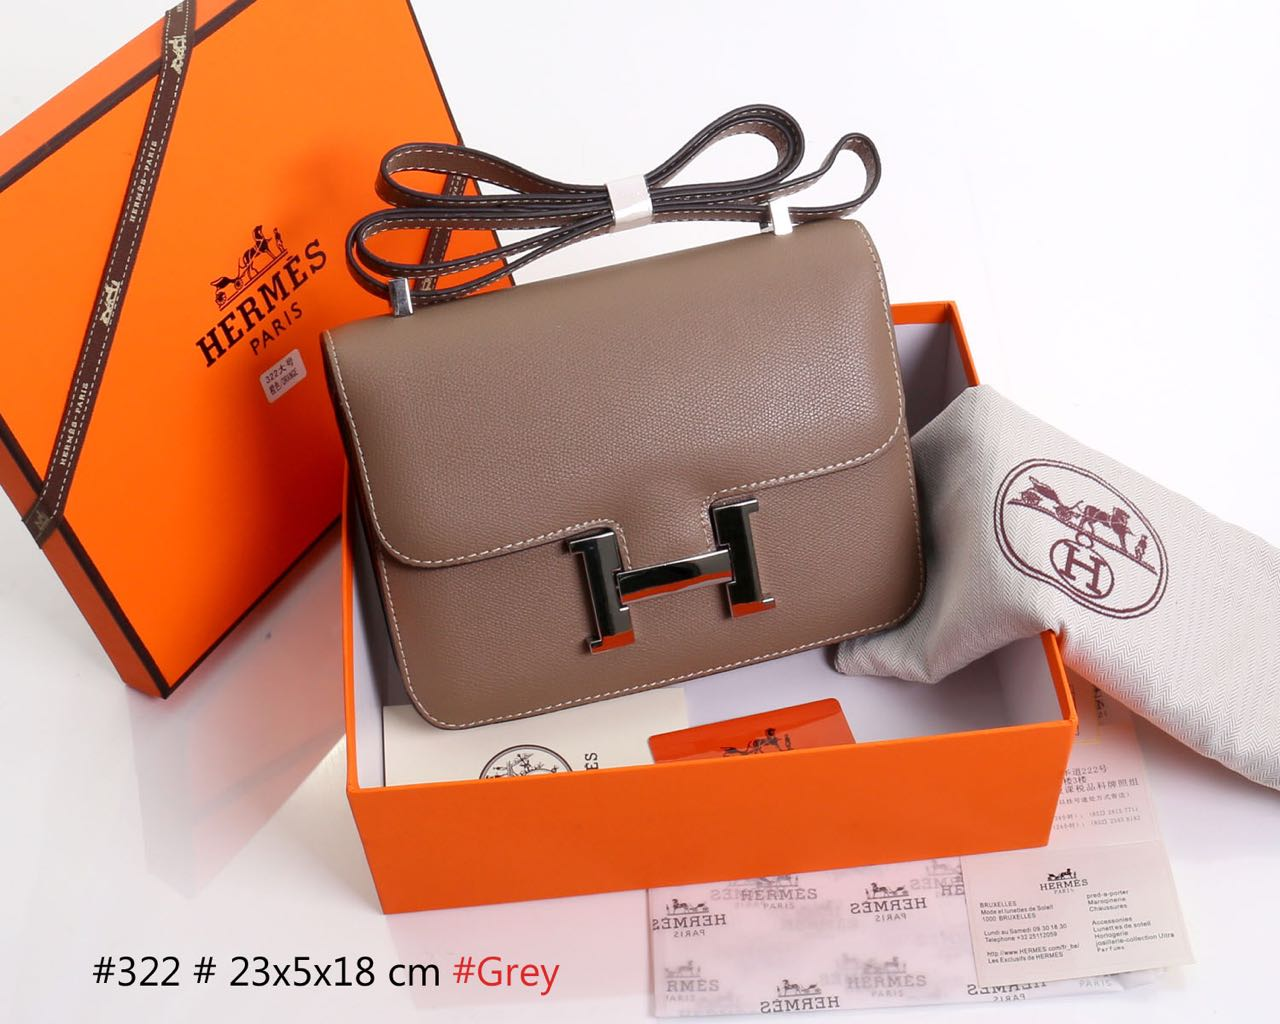 Clutch Hermes Constance Small SHW ABU KHAKI Semprem Box Terlaris 322. Model  Clutch Batam · Model Tas Batam ... a6066d84b7